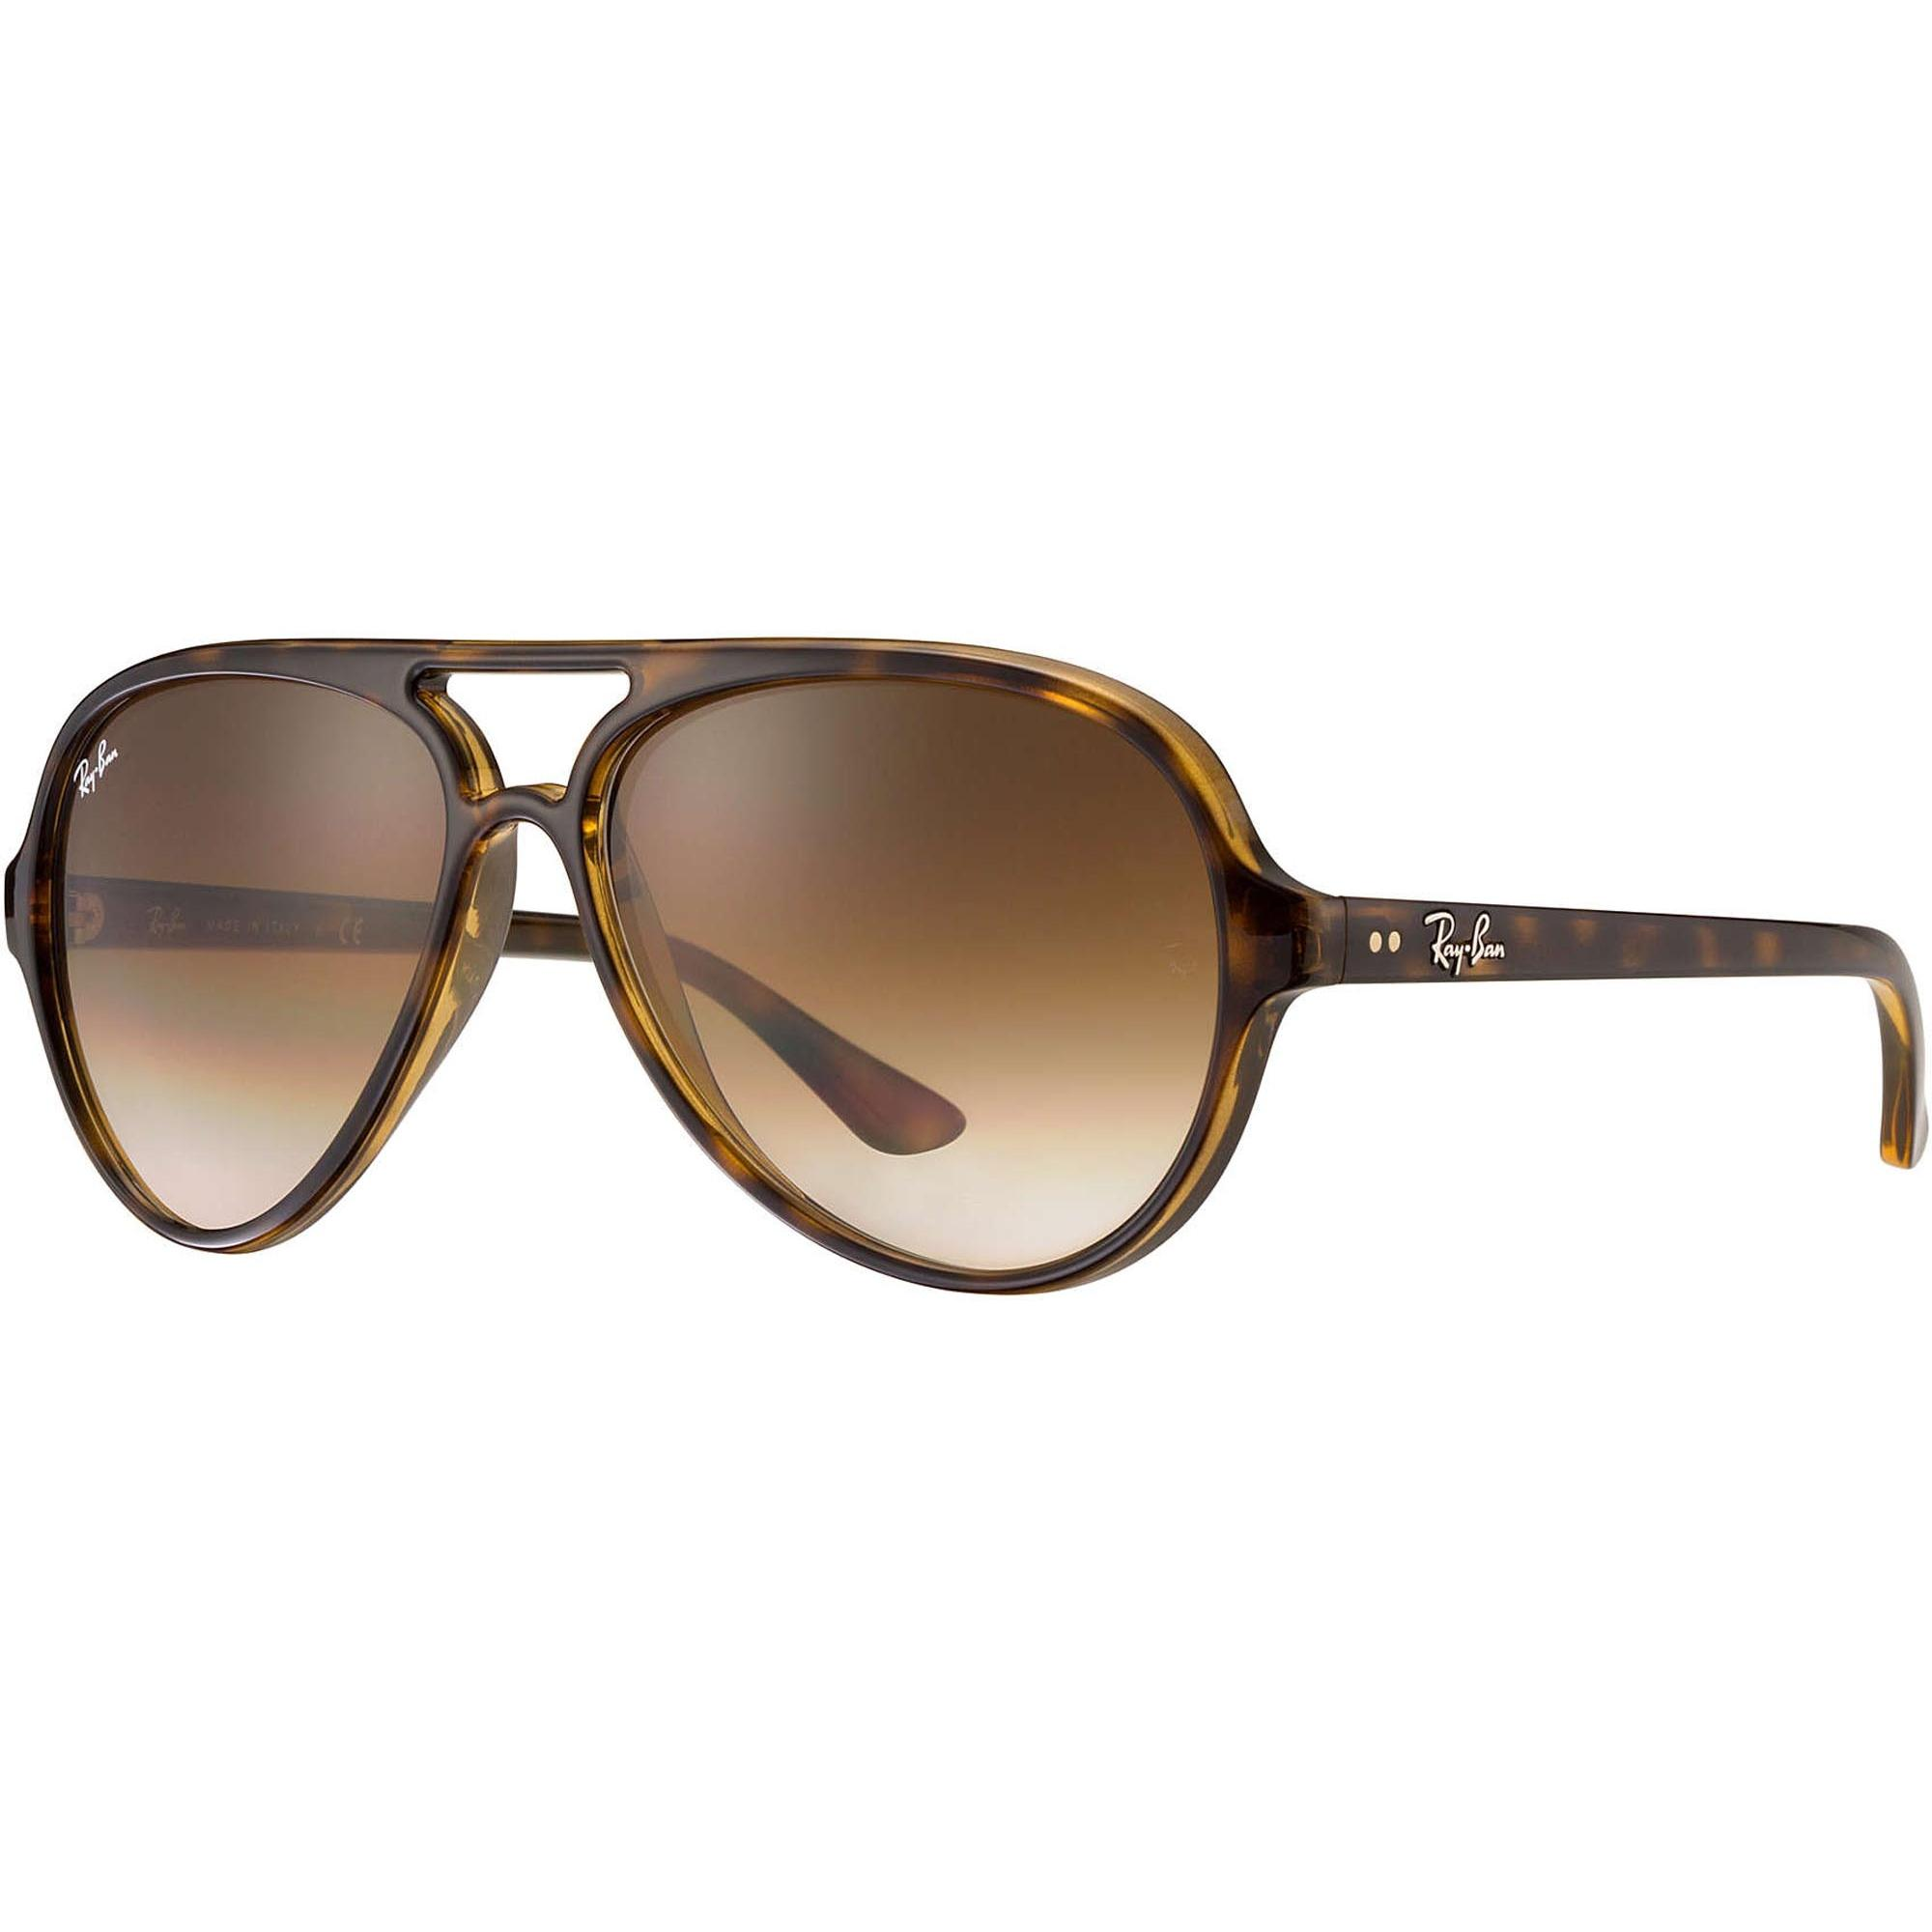 d15df3a4359 Ray-Ban Rayban Cats 5000 Tortoise Sunglasses 710 51 59 in Gray for ...